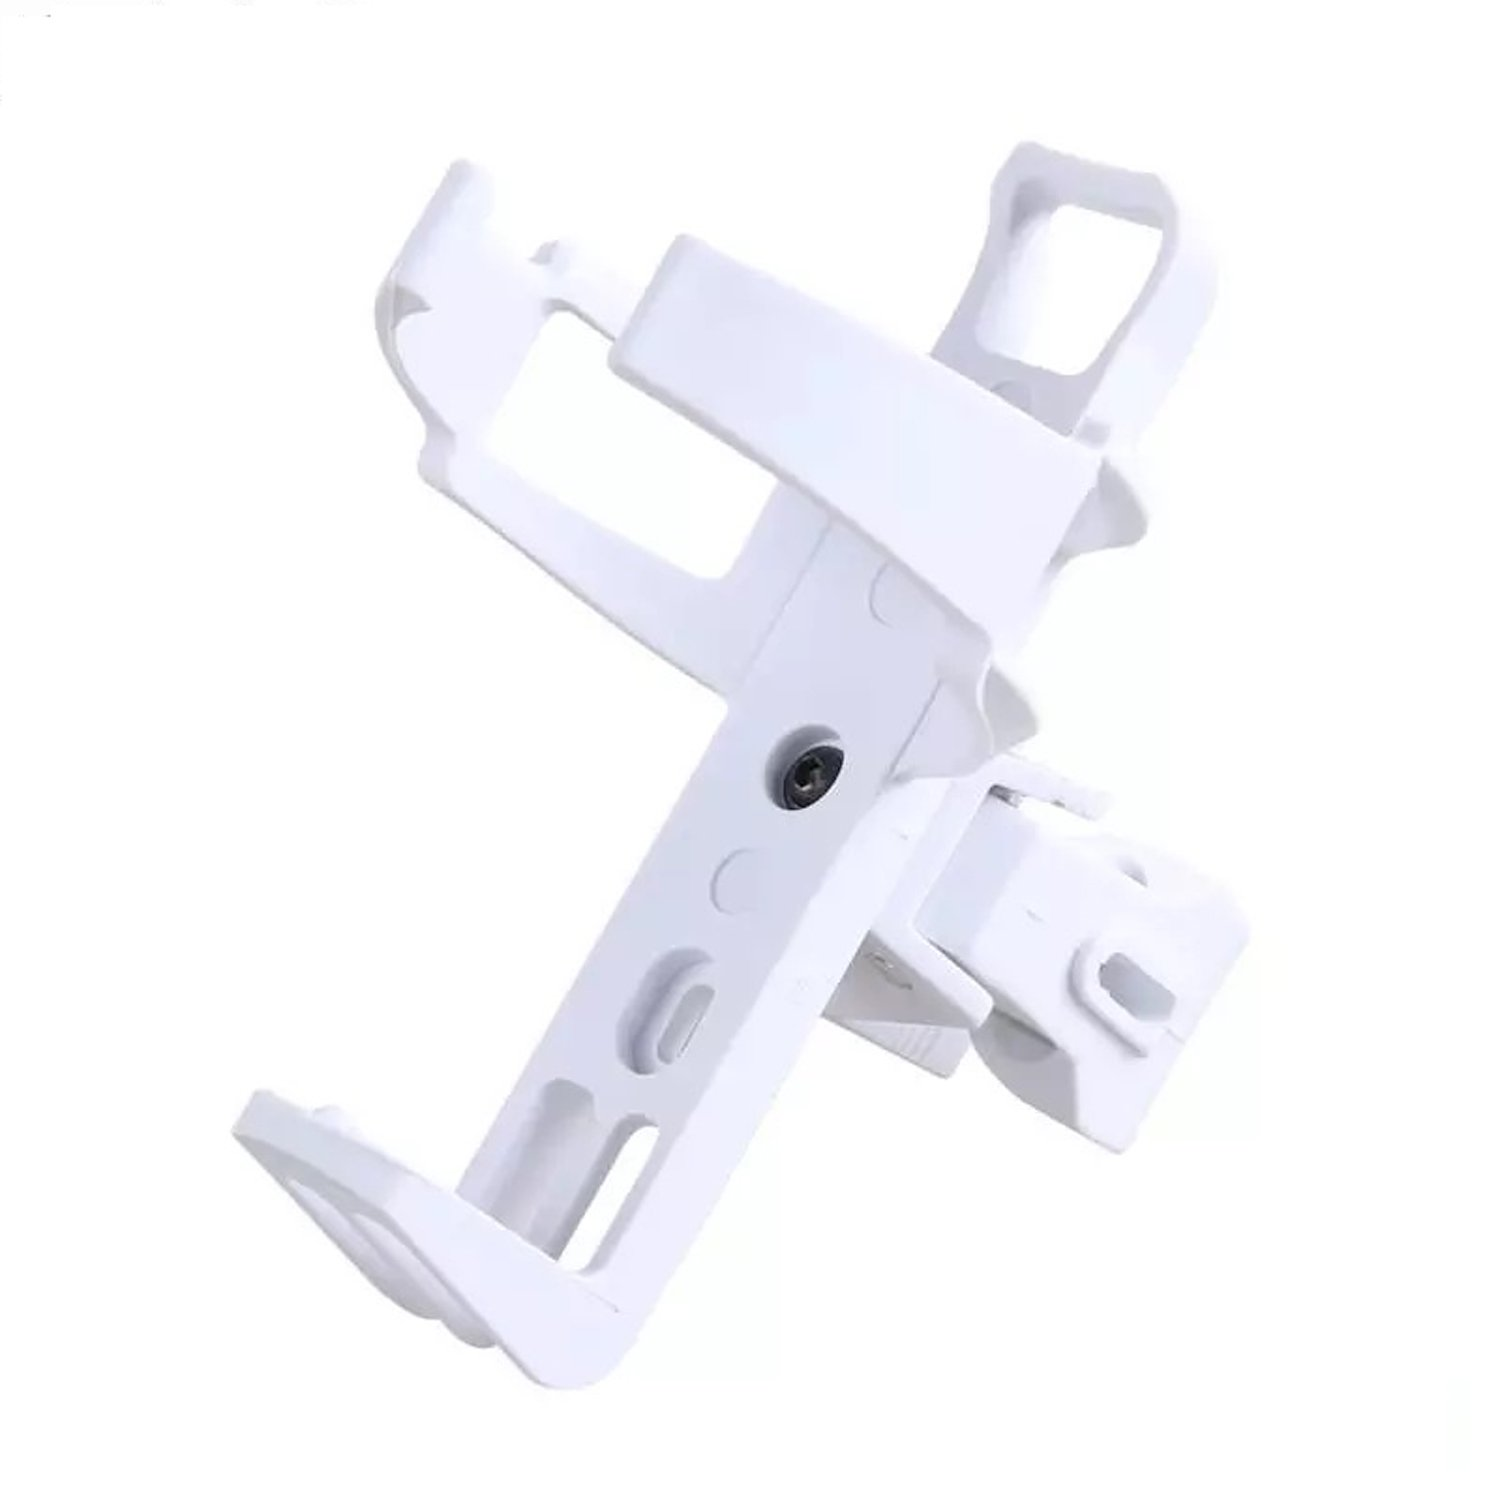 Ruian No Lost Bottles Quick and Easy to Mount Lightweight and Strong Bicycle Bottle Cage Bike Water Bottle Holder white Secure Retention System Great for Road and Mountain Bikes